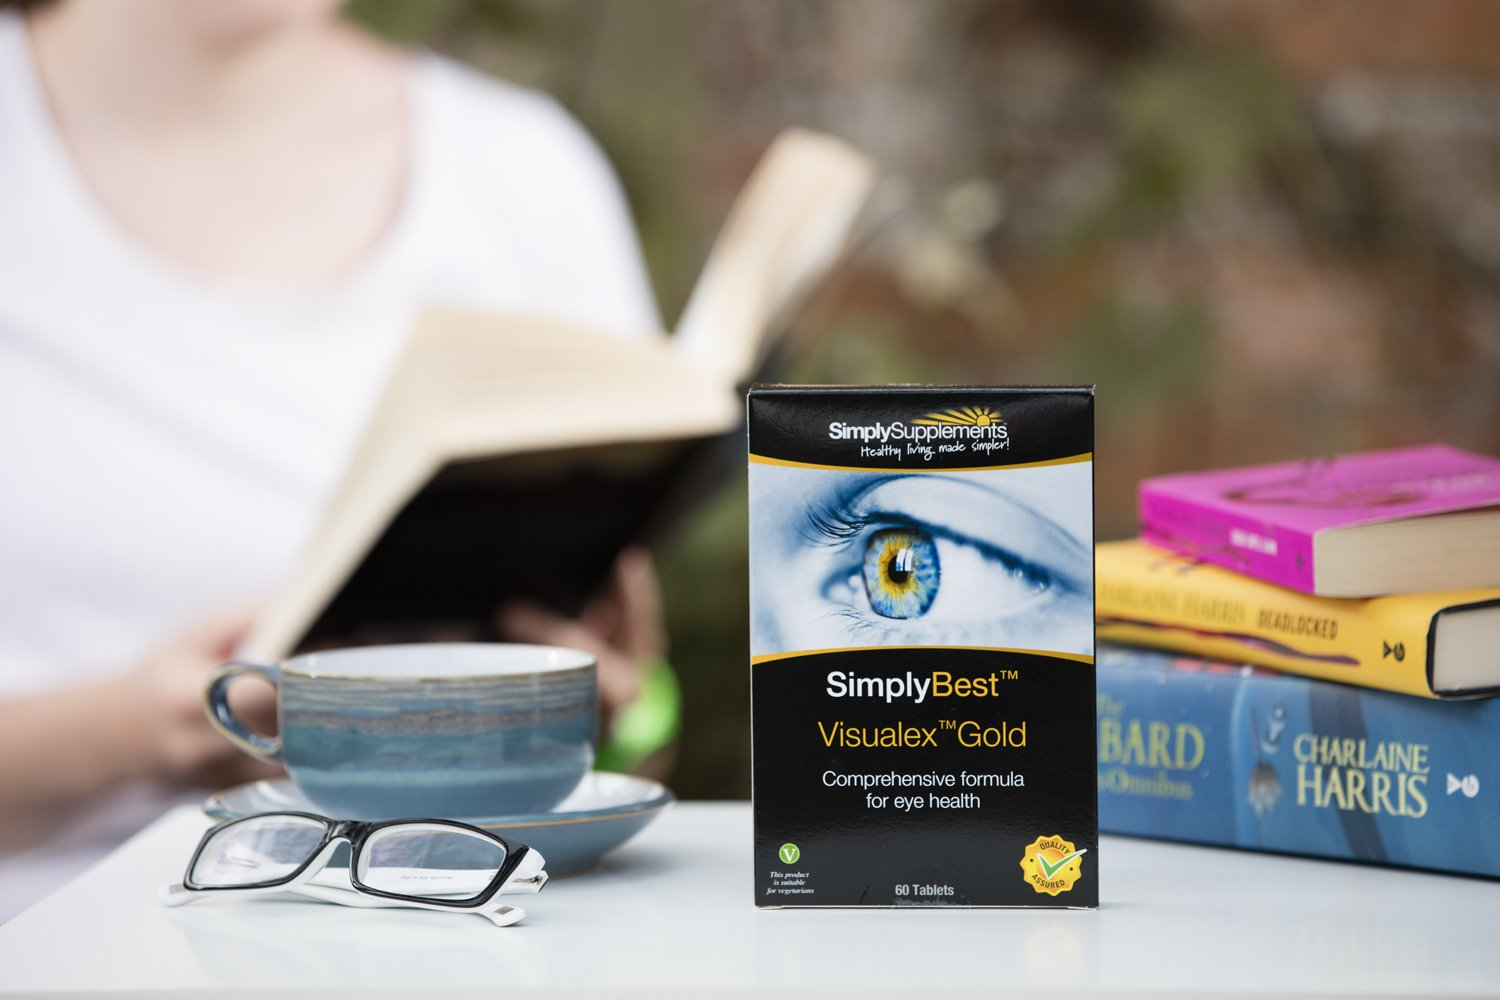 Amazon.com: Visualex Gold 60 Tablets | Comprehensive Formula For Eye Health | 100% Money Back Guarantee | Manufactured in the UK: Health & Personal Care